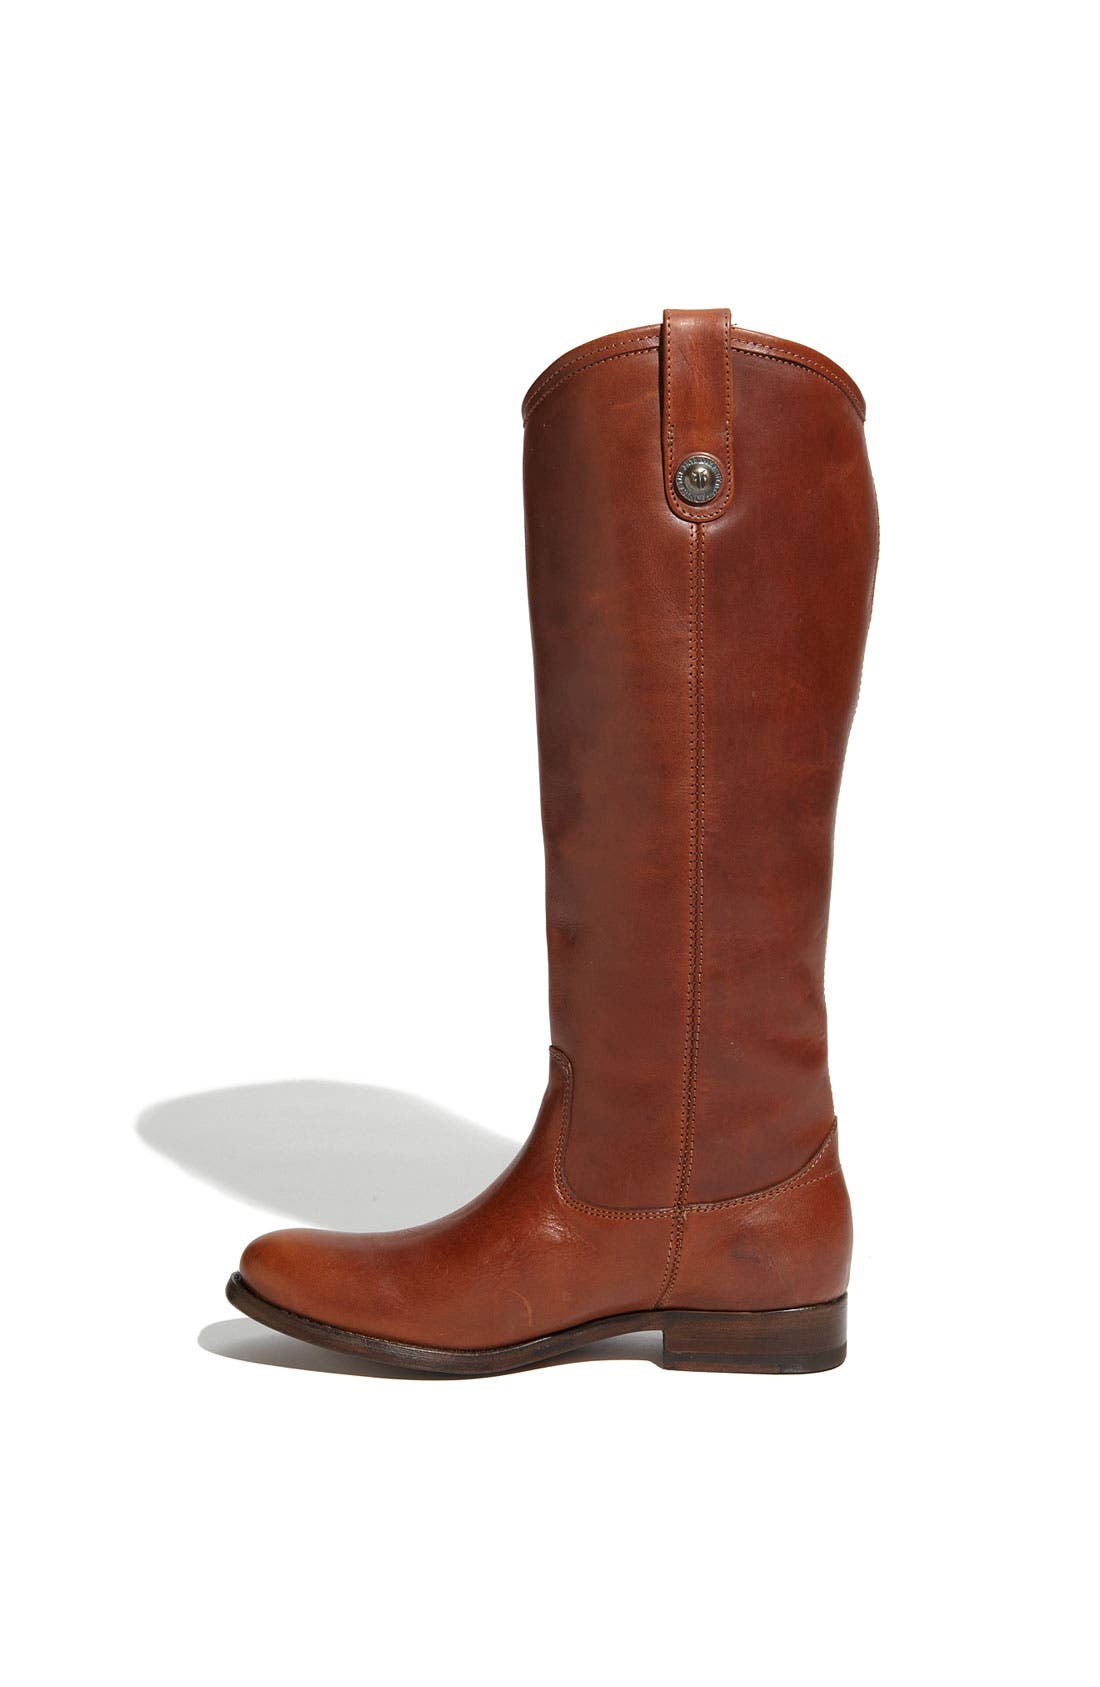 'Melissa Button' Leather Riding Boot,                             Alternate thumbnail 60, color,